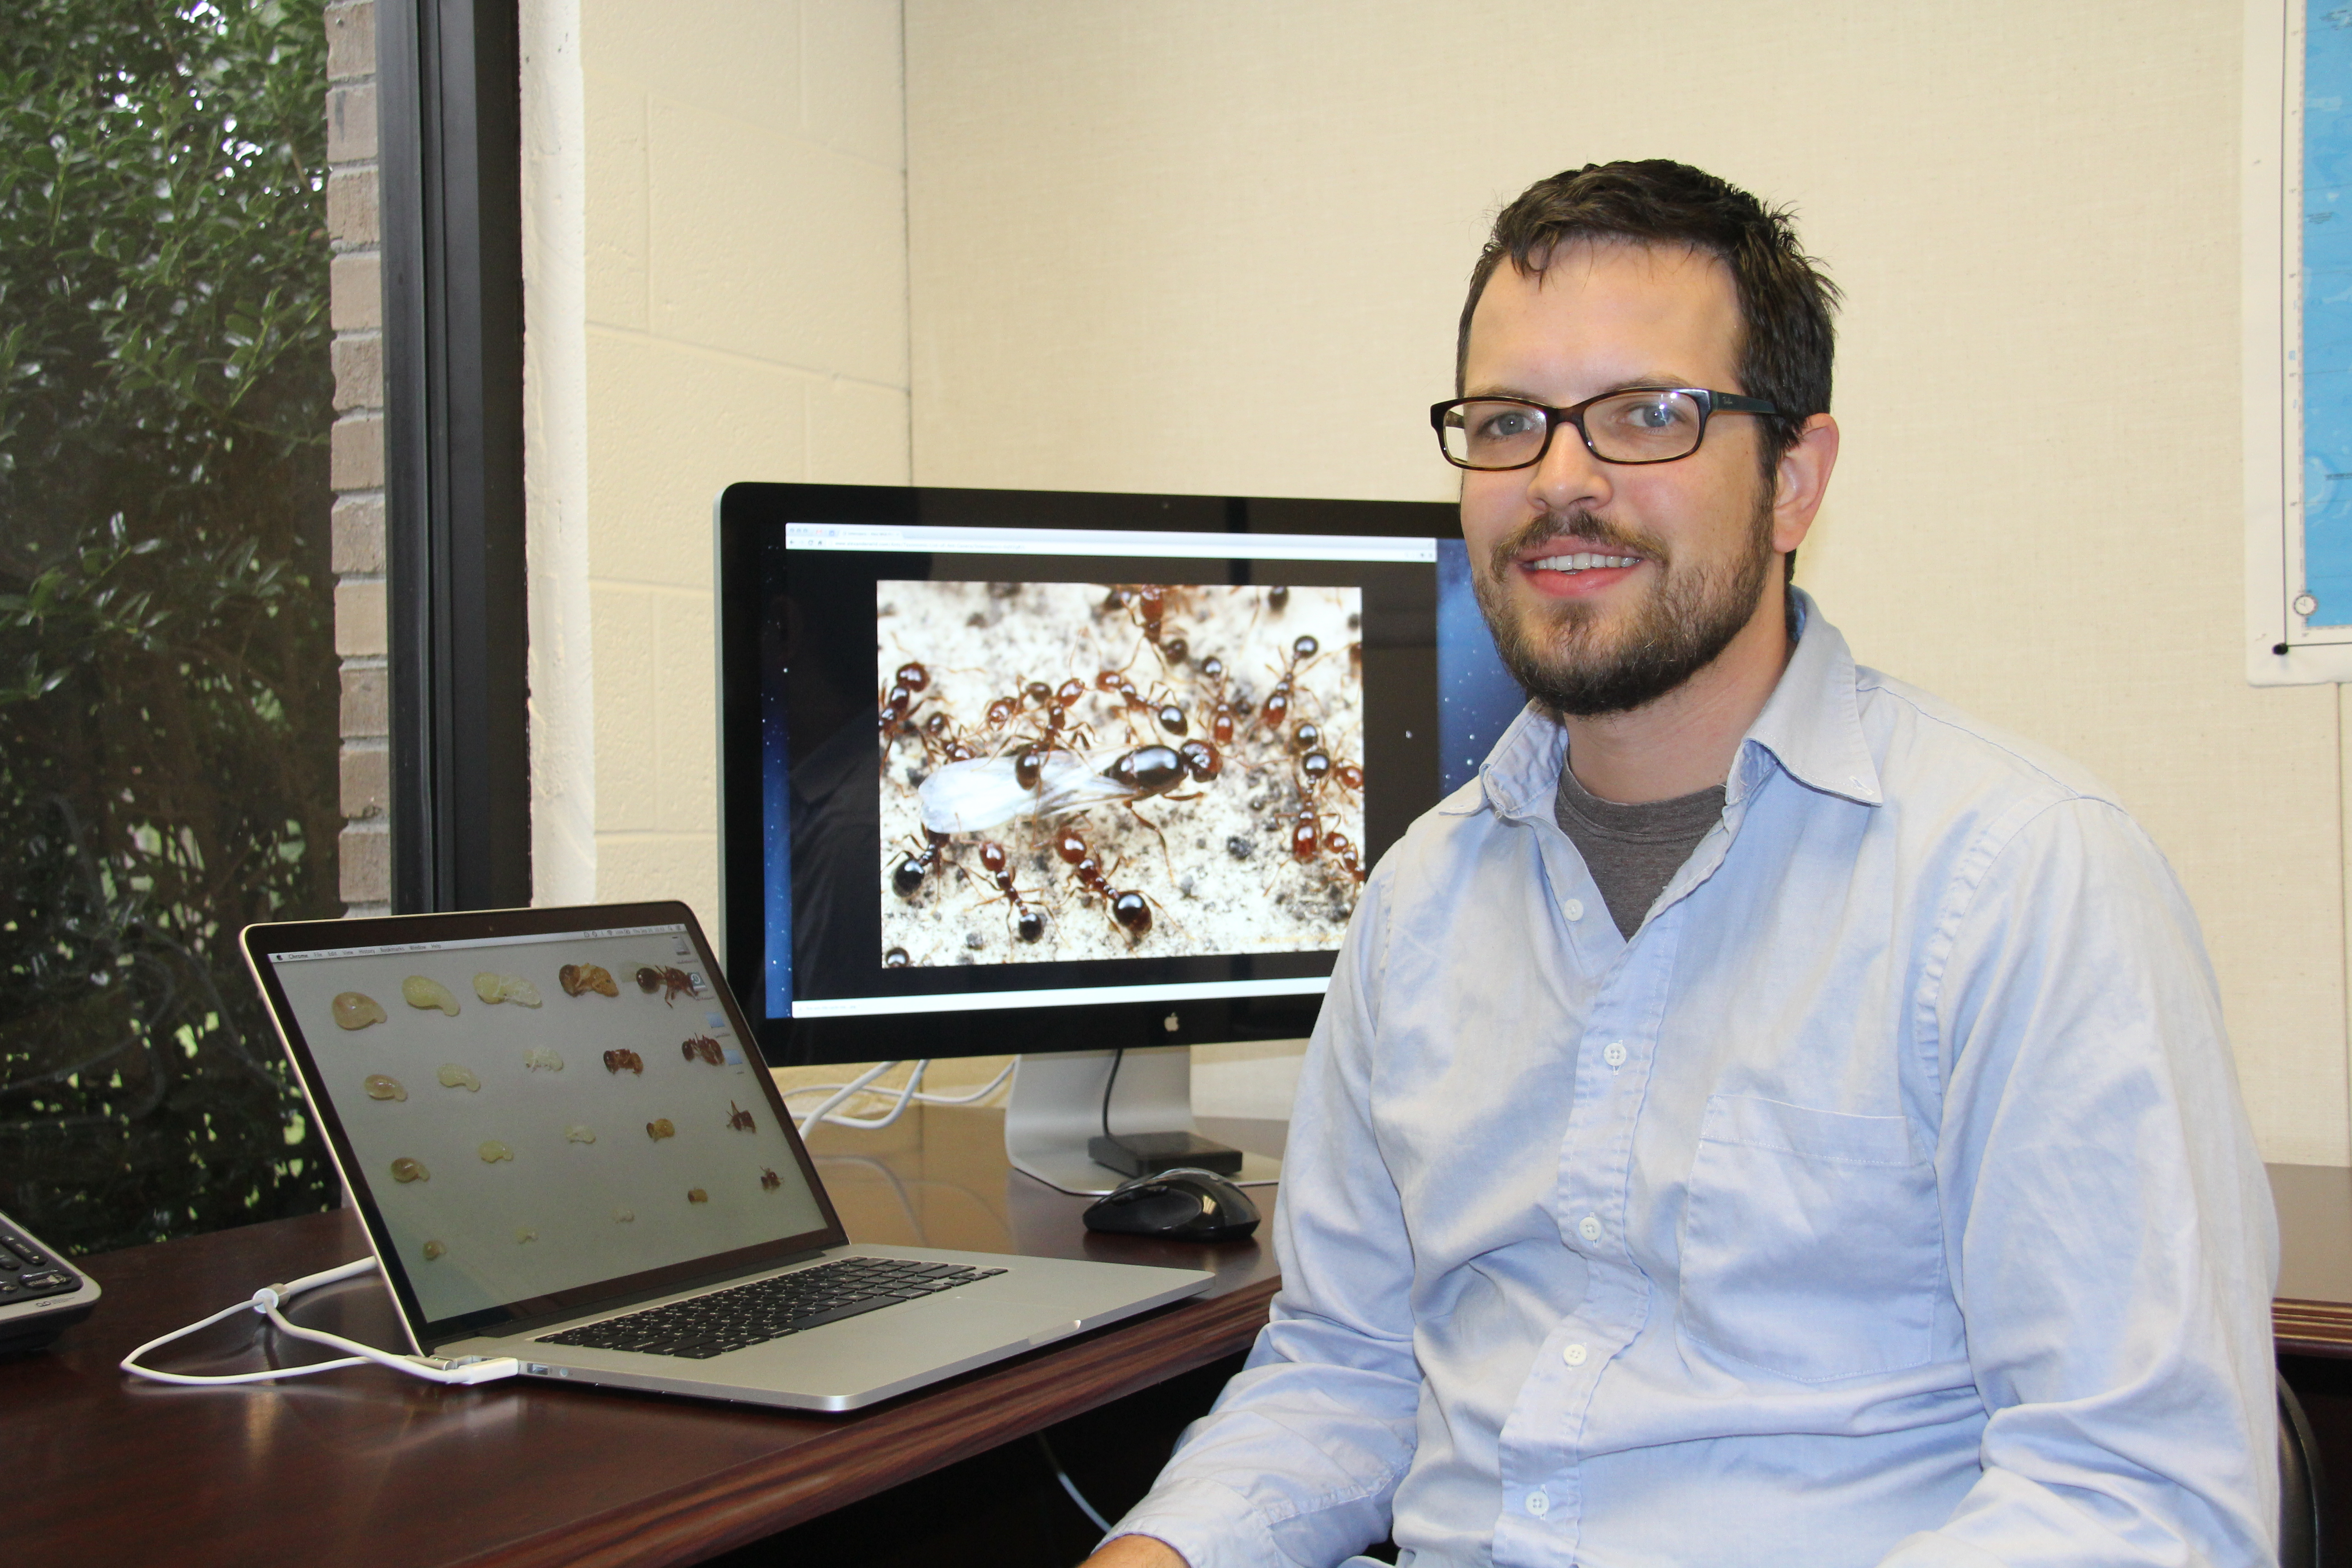 Entomologist Brendan Hunt has joined the faculty of the University of Georgia College of Agricultural and Environmental Sciences. He is based on the Griffin campus and his research focus is fire ant genetics.